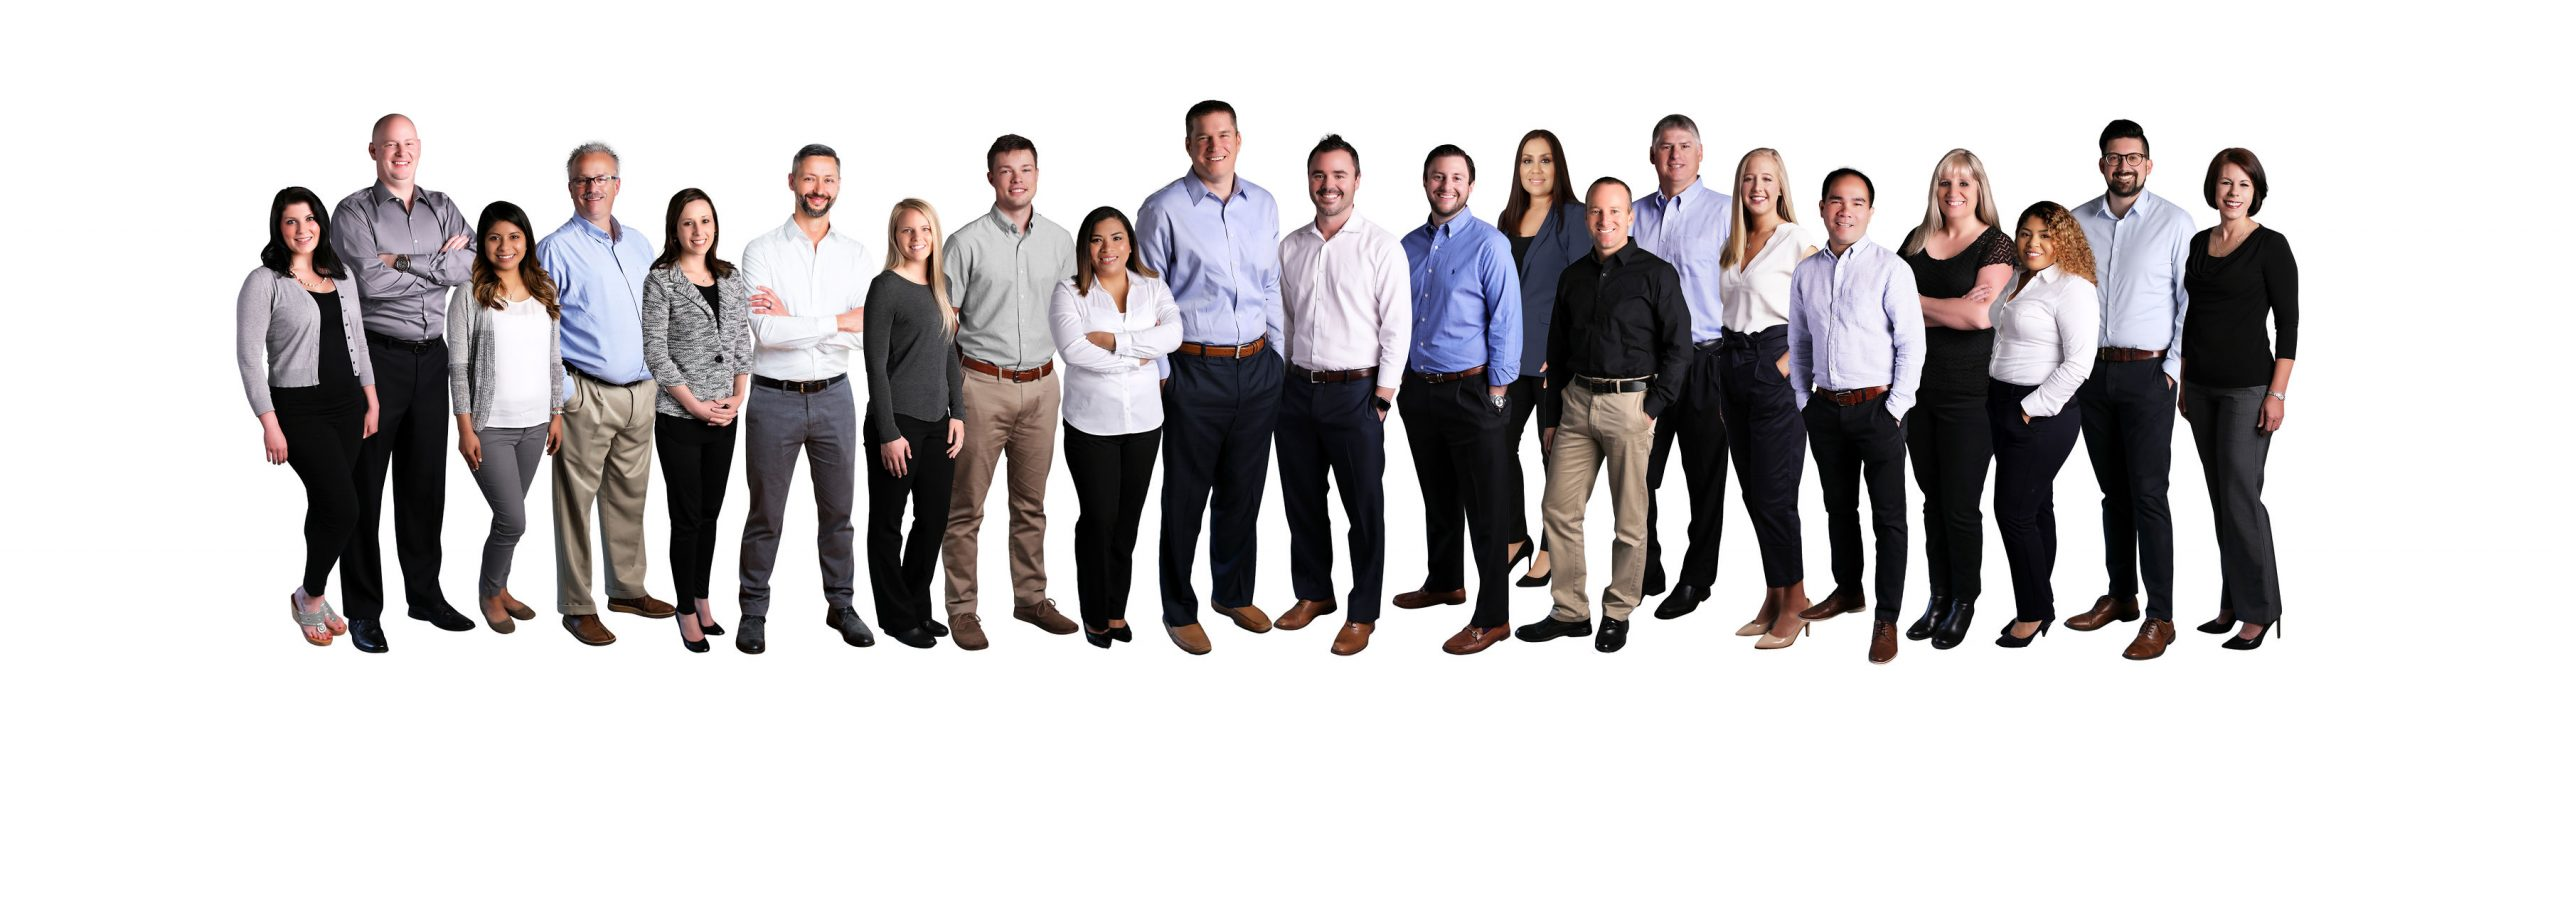 Alliance Insurance group staff picture.